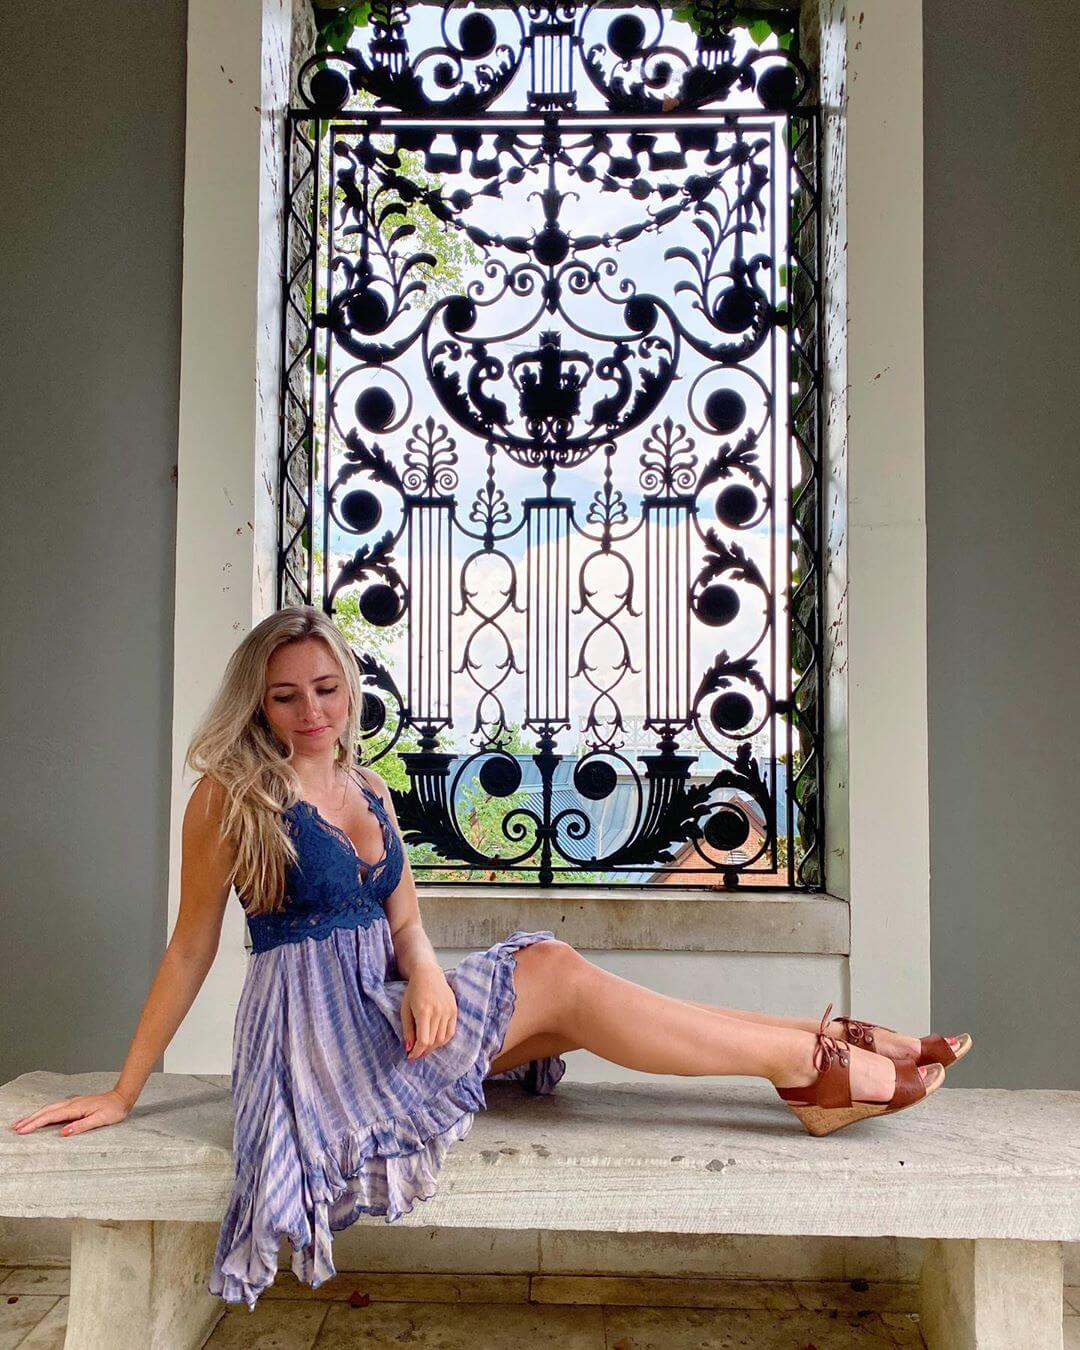 Beautiful American model Brittany Carr @brittanyacarr wearing a blue dress sitting in front of a vintage window showing her long sexy legs